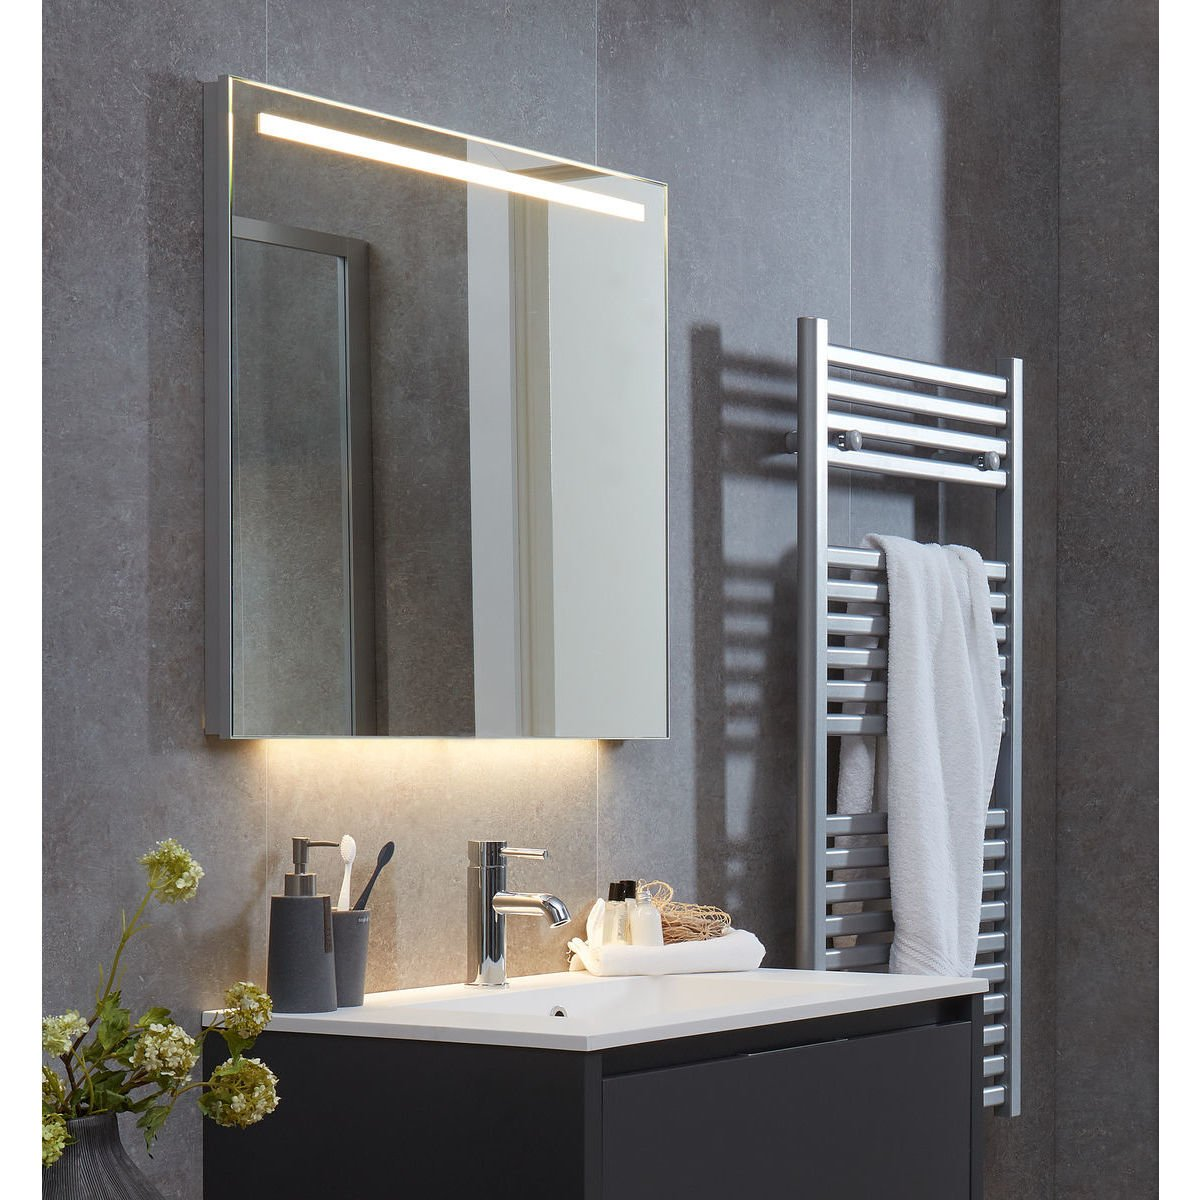 bruynzeel miroir panneau 120x60cm avec clairage led. Black Bedroom Furniture Sets. Home Design Ideas